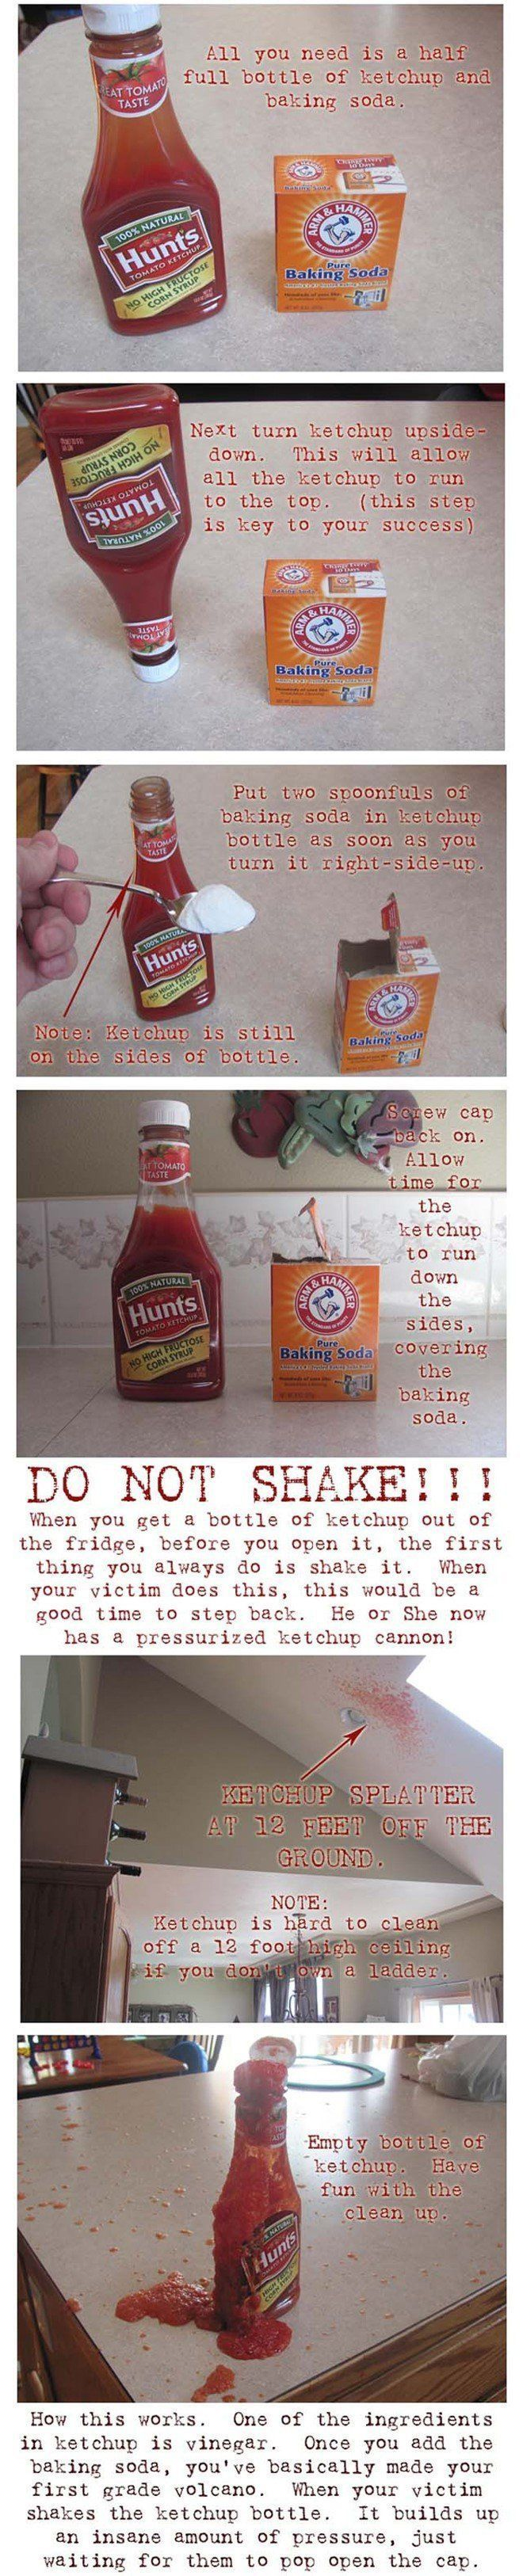 Ketchup April Fools Prank